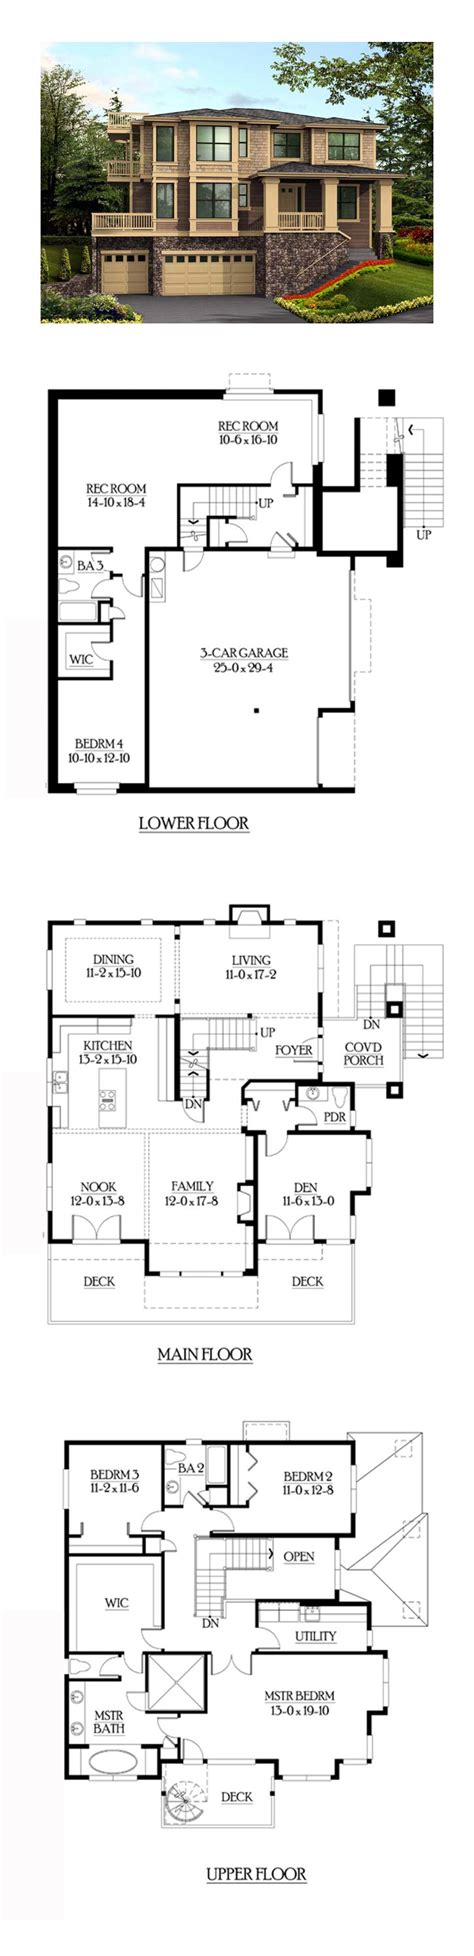 house plan with basement best 25 basement house plans ideas on pinterest house floor plans house plans and